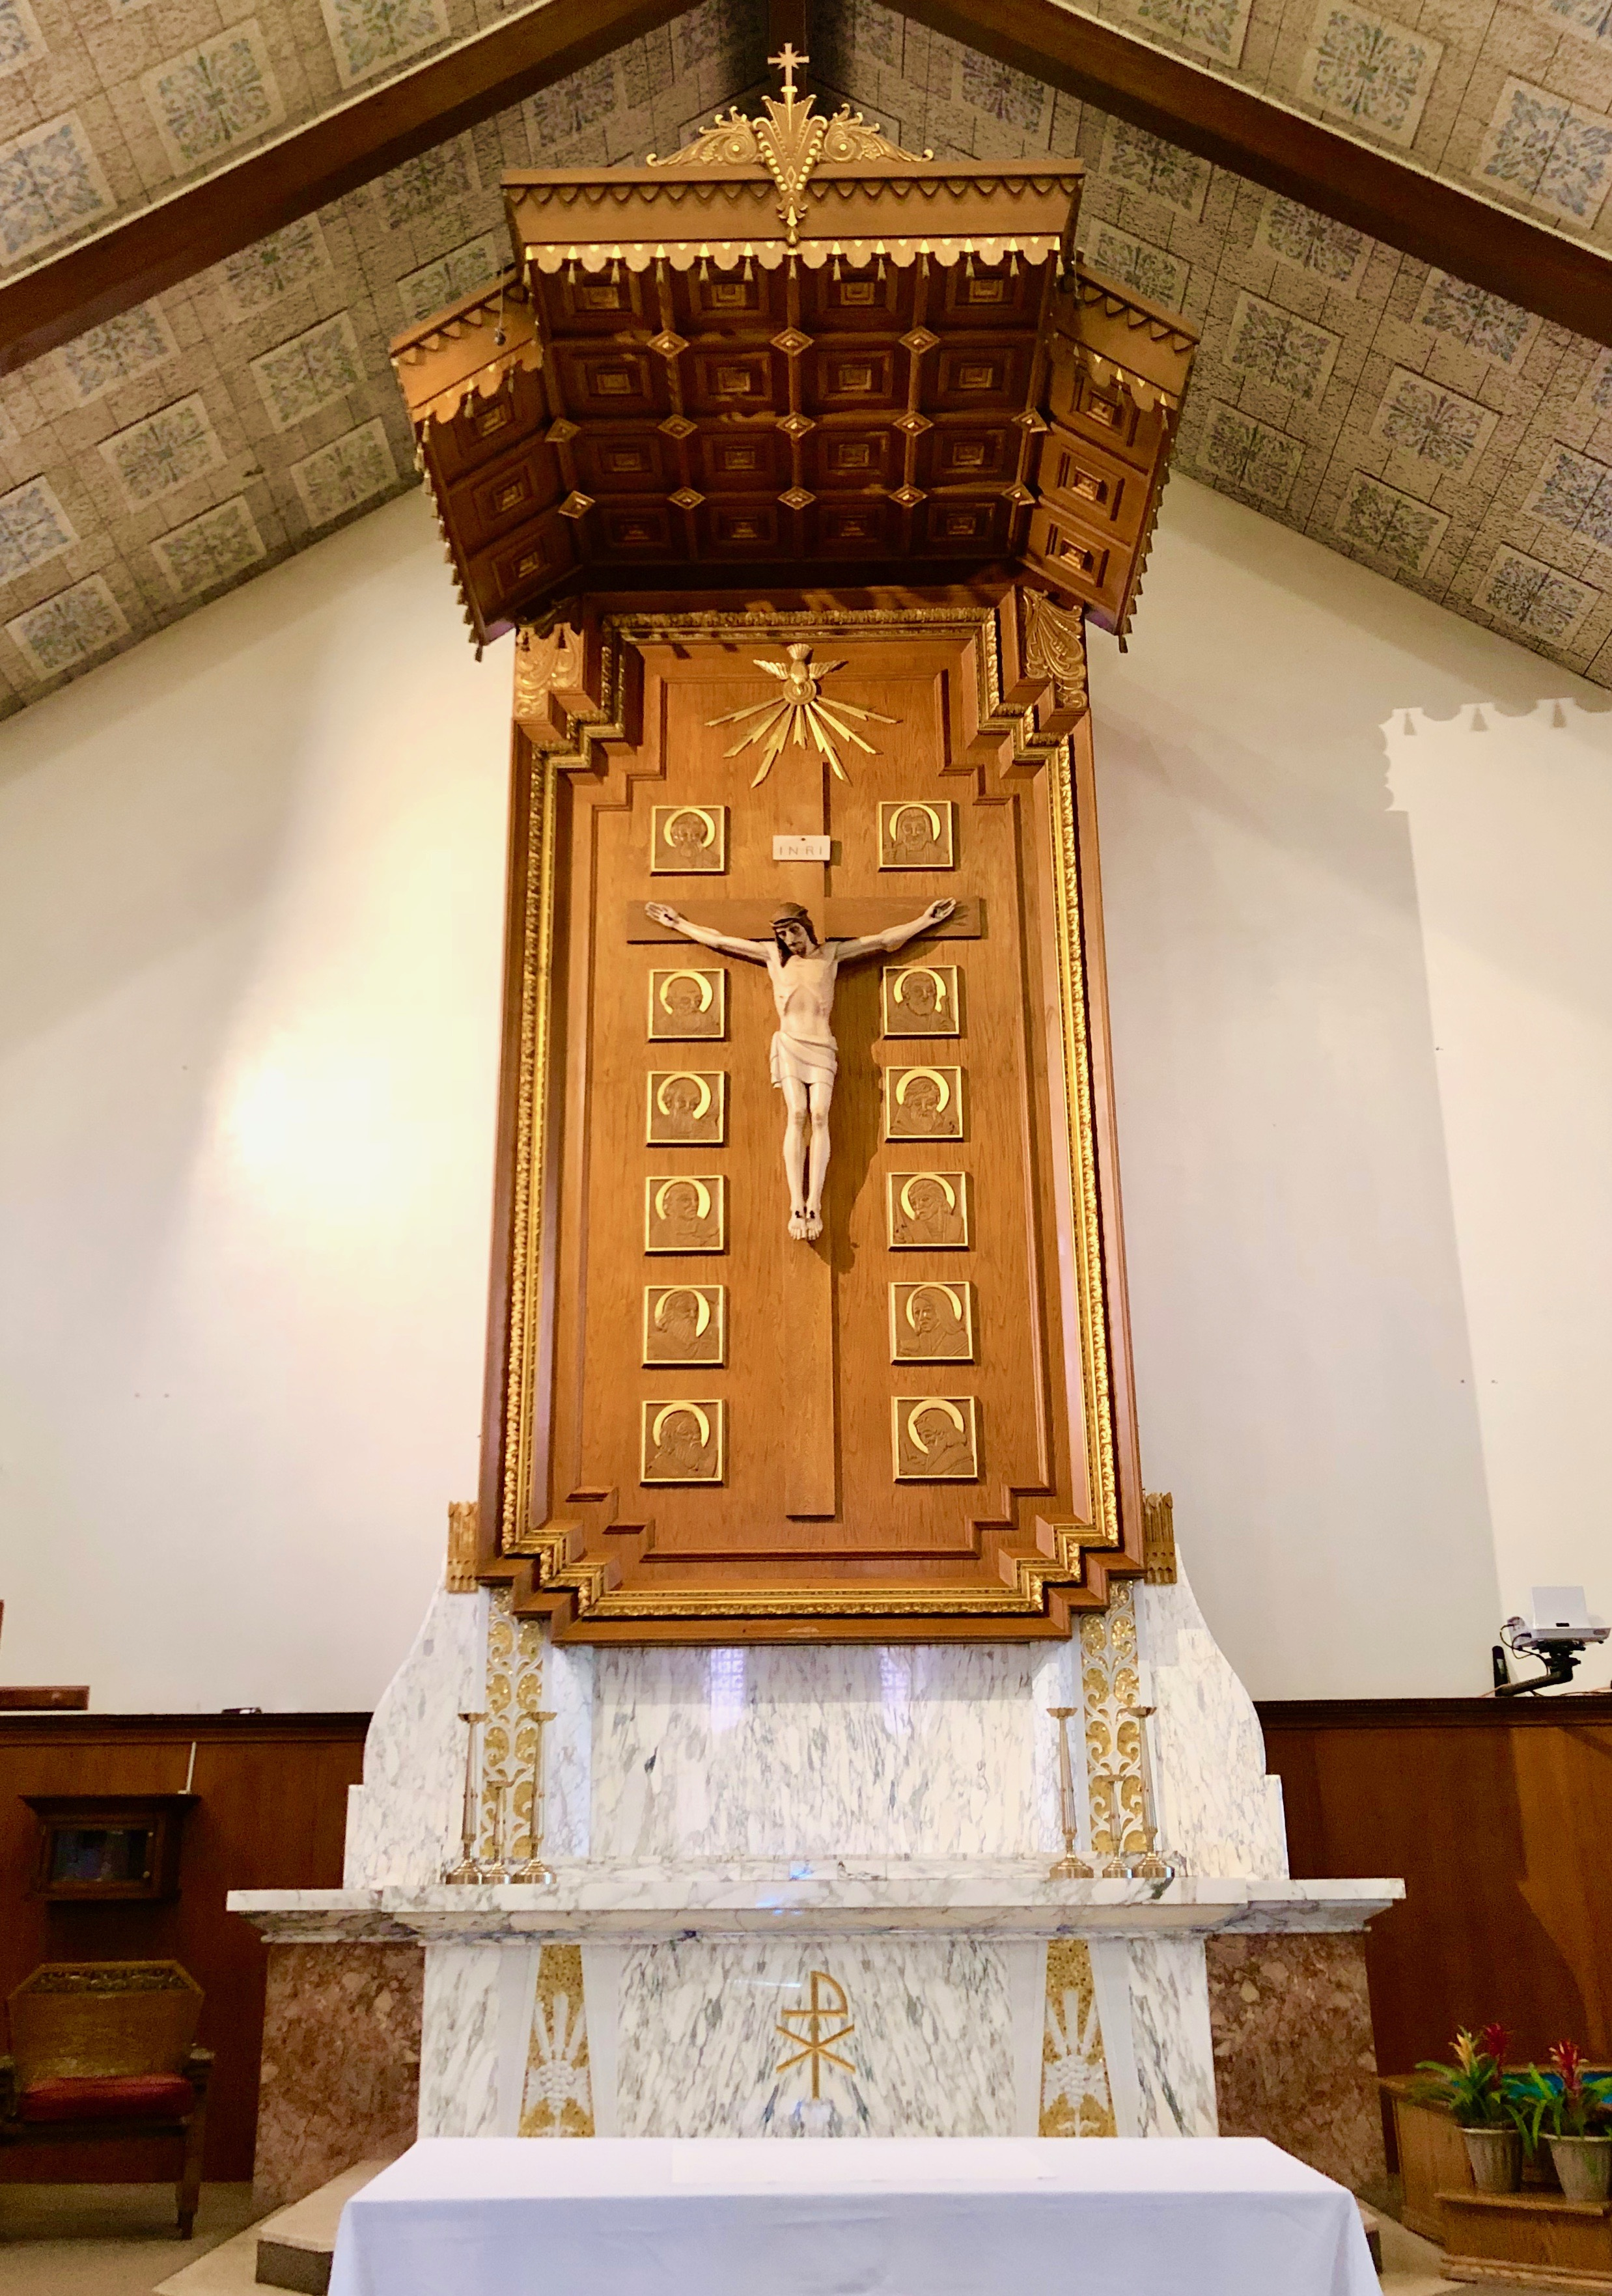 Crucifix Reredos Design, Gilded Marble altar, Our Lady of Refuge Catholic Church, Castroville, California Lanzini.jpeg